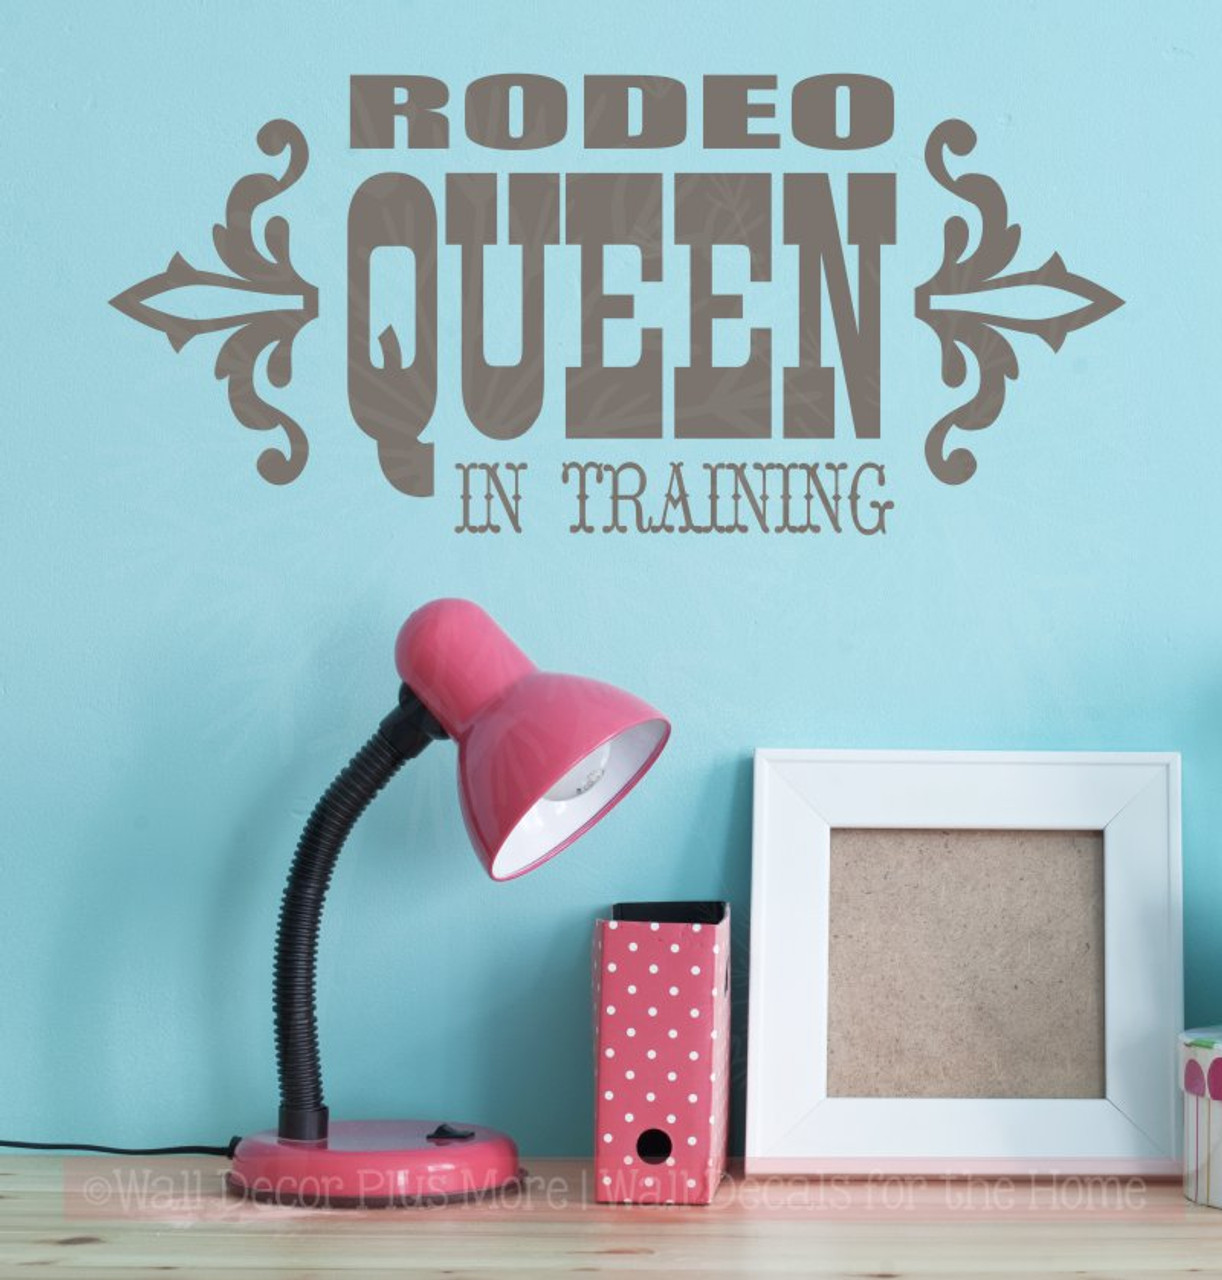 rodeo queen in training wall decals quotes western wall stickers